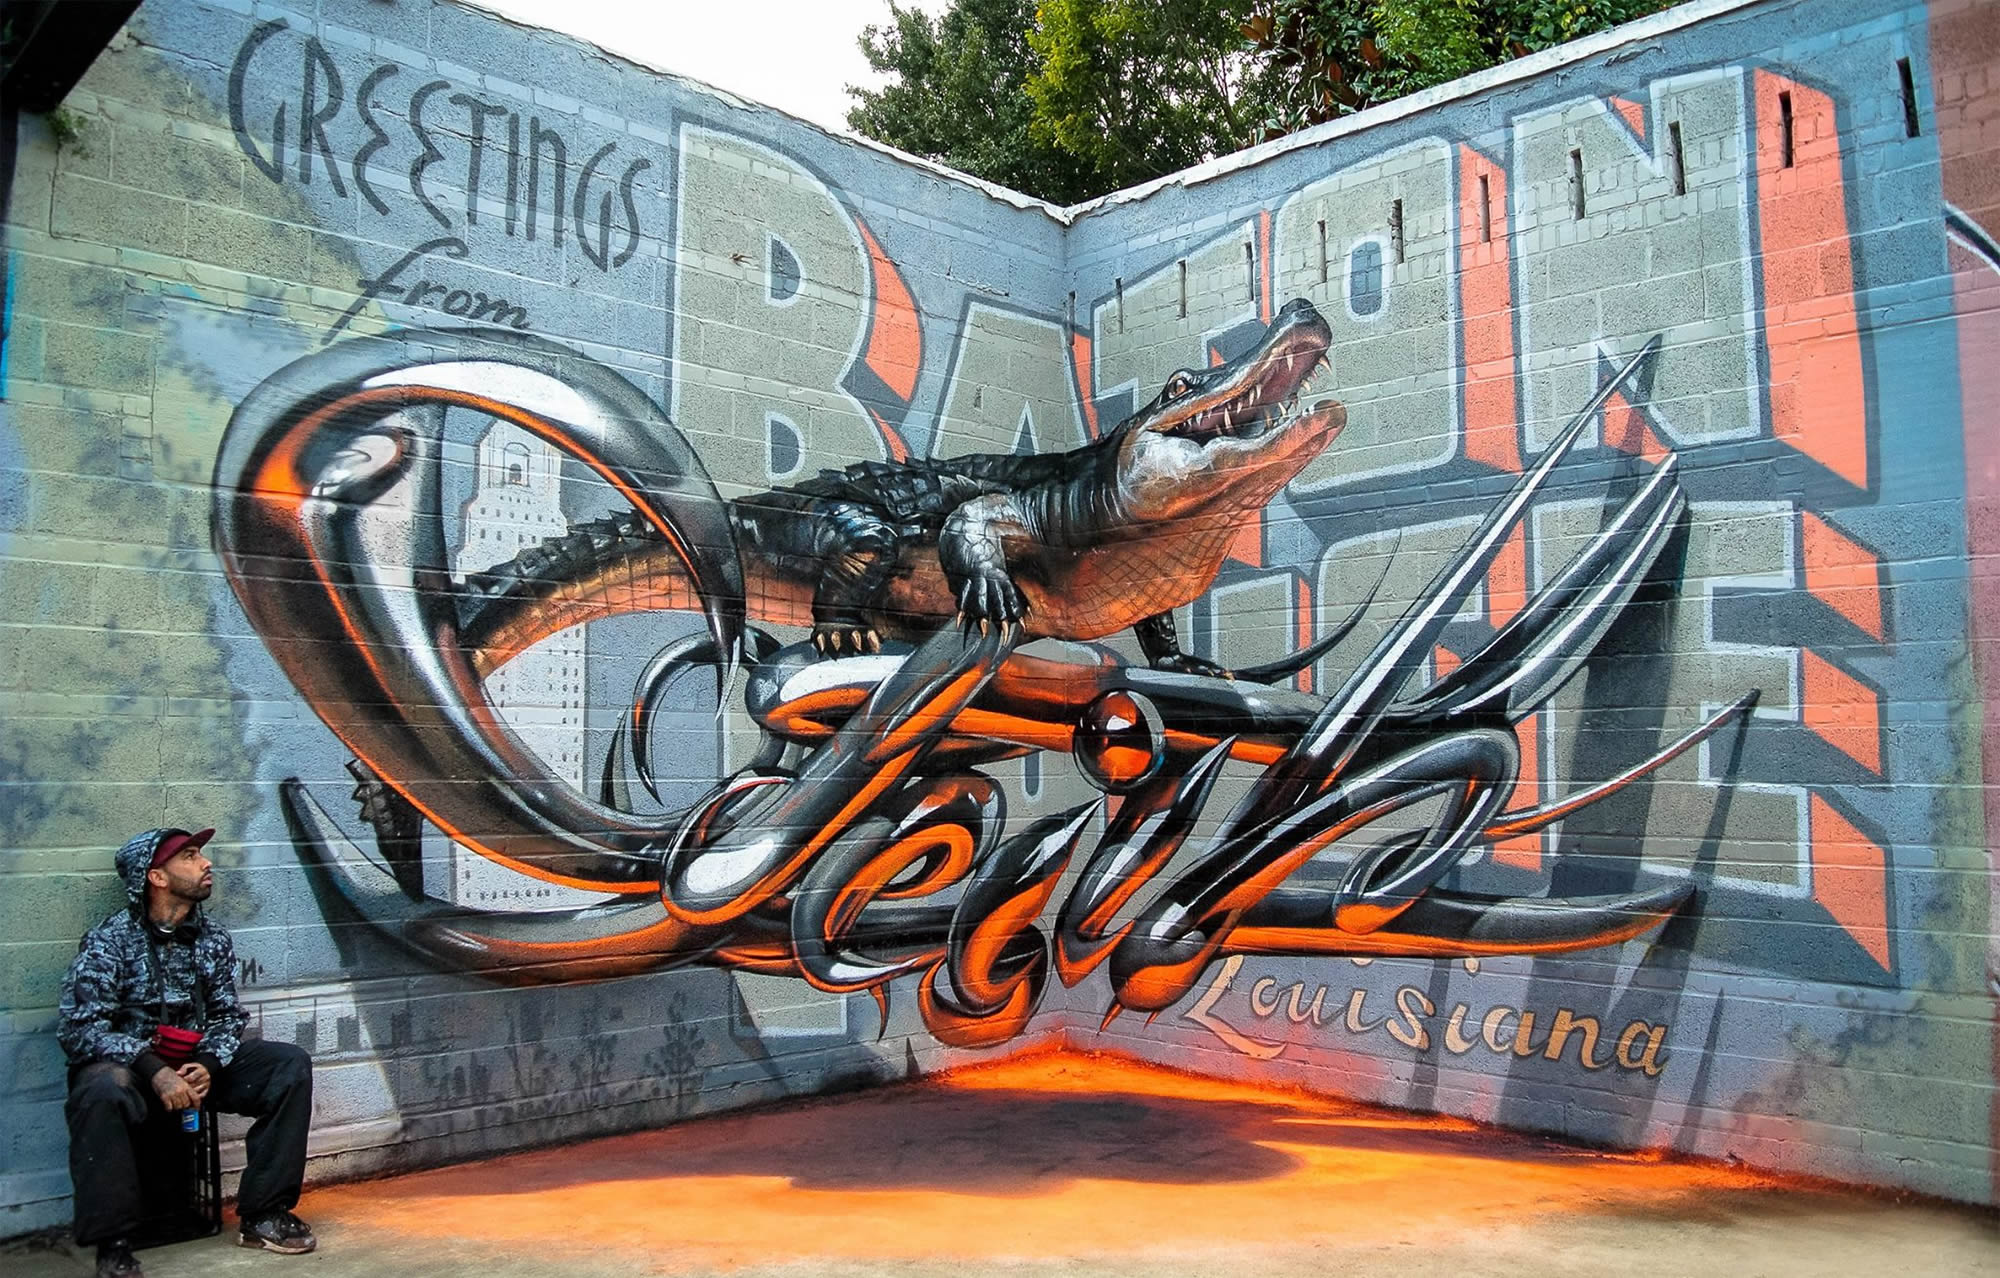 Odeith is Back with More Jaw-Dropping Anamorphic Graffiti